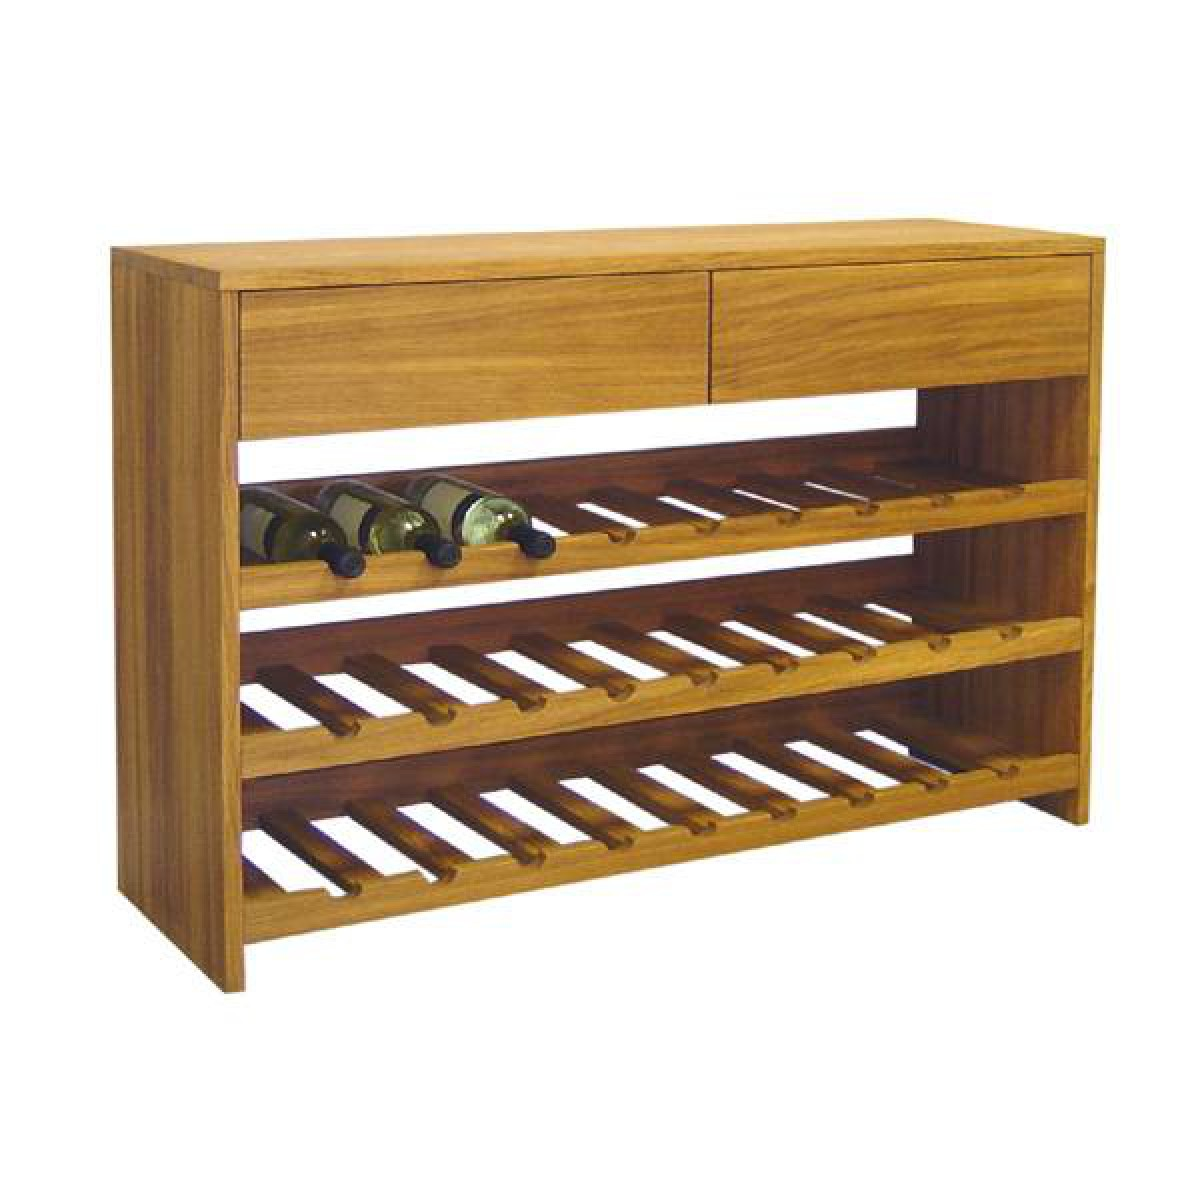 kitchen wine cabinet shelf unit wine rack shelving units kitchen shop by room 22189